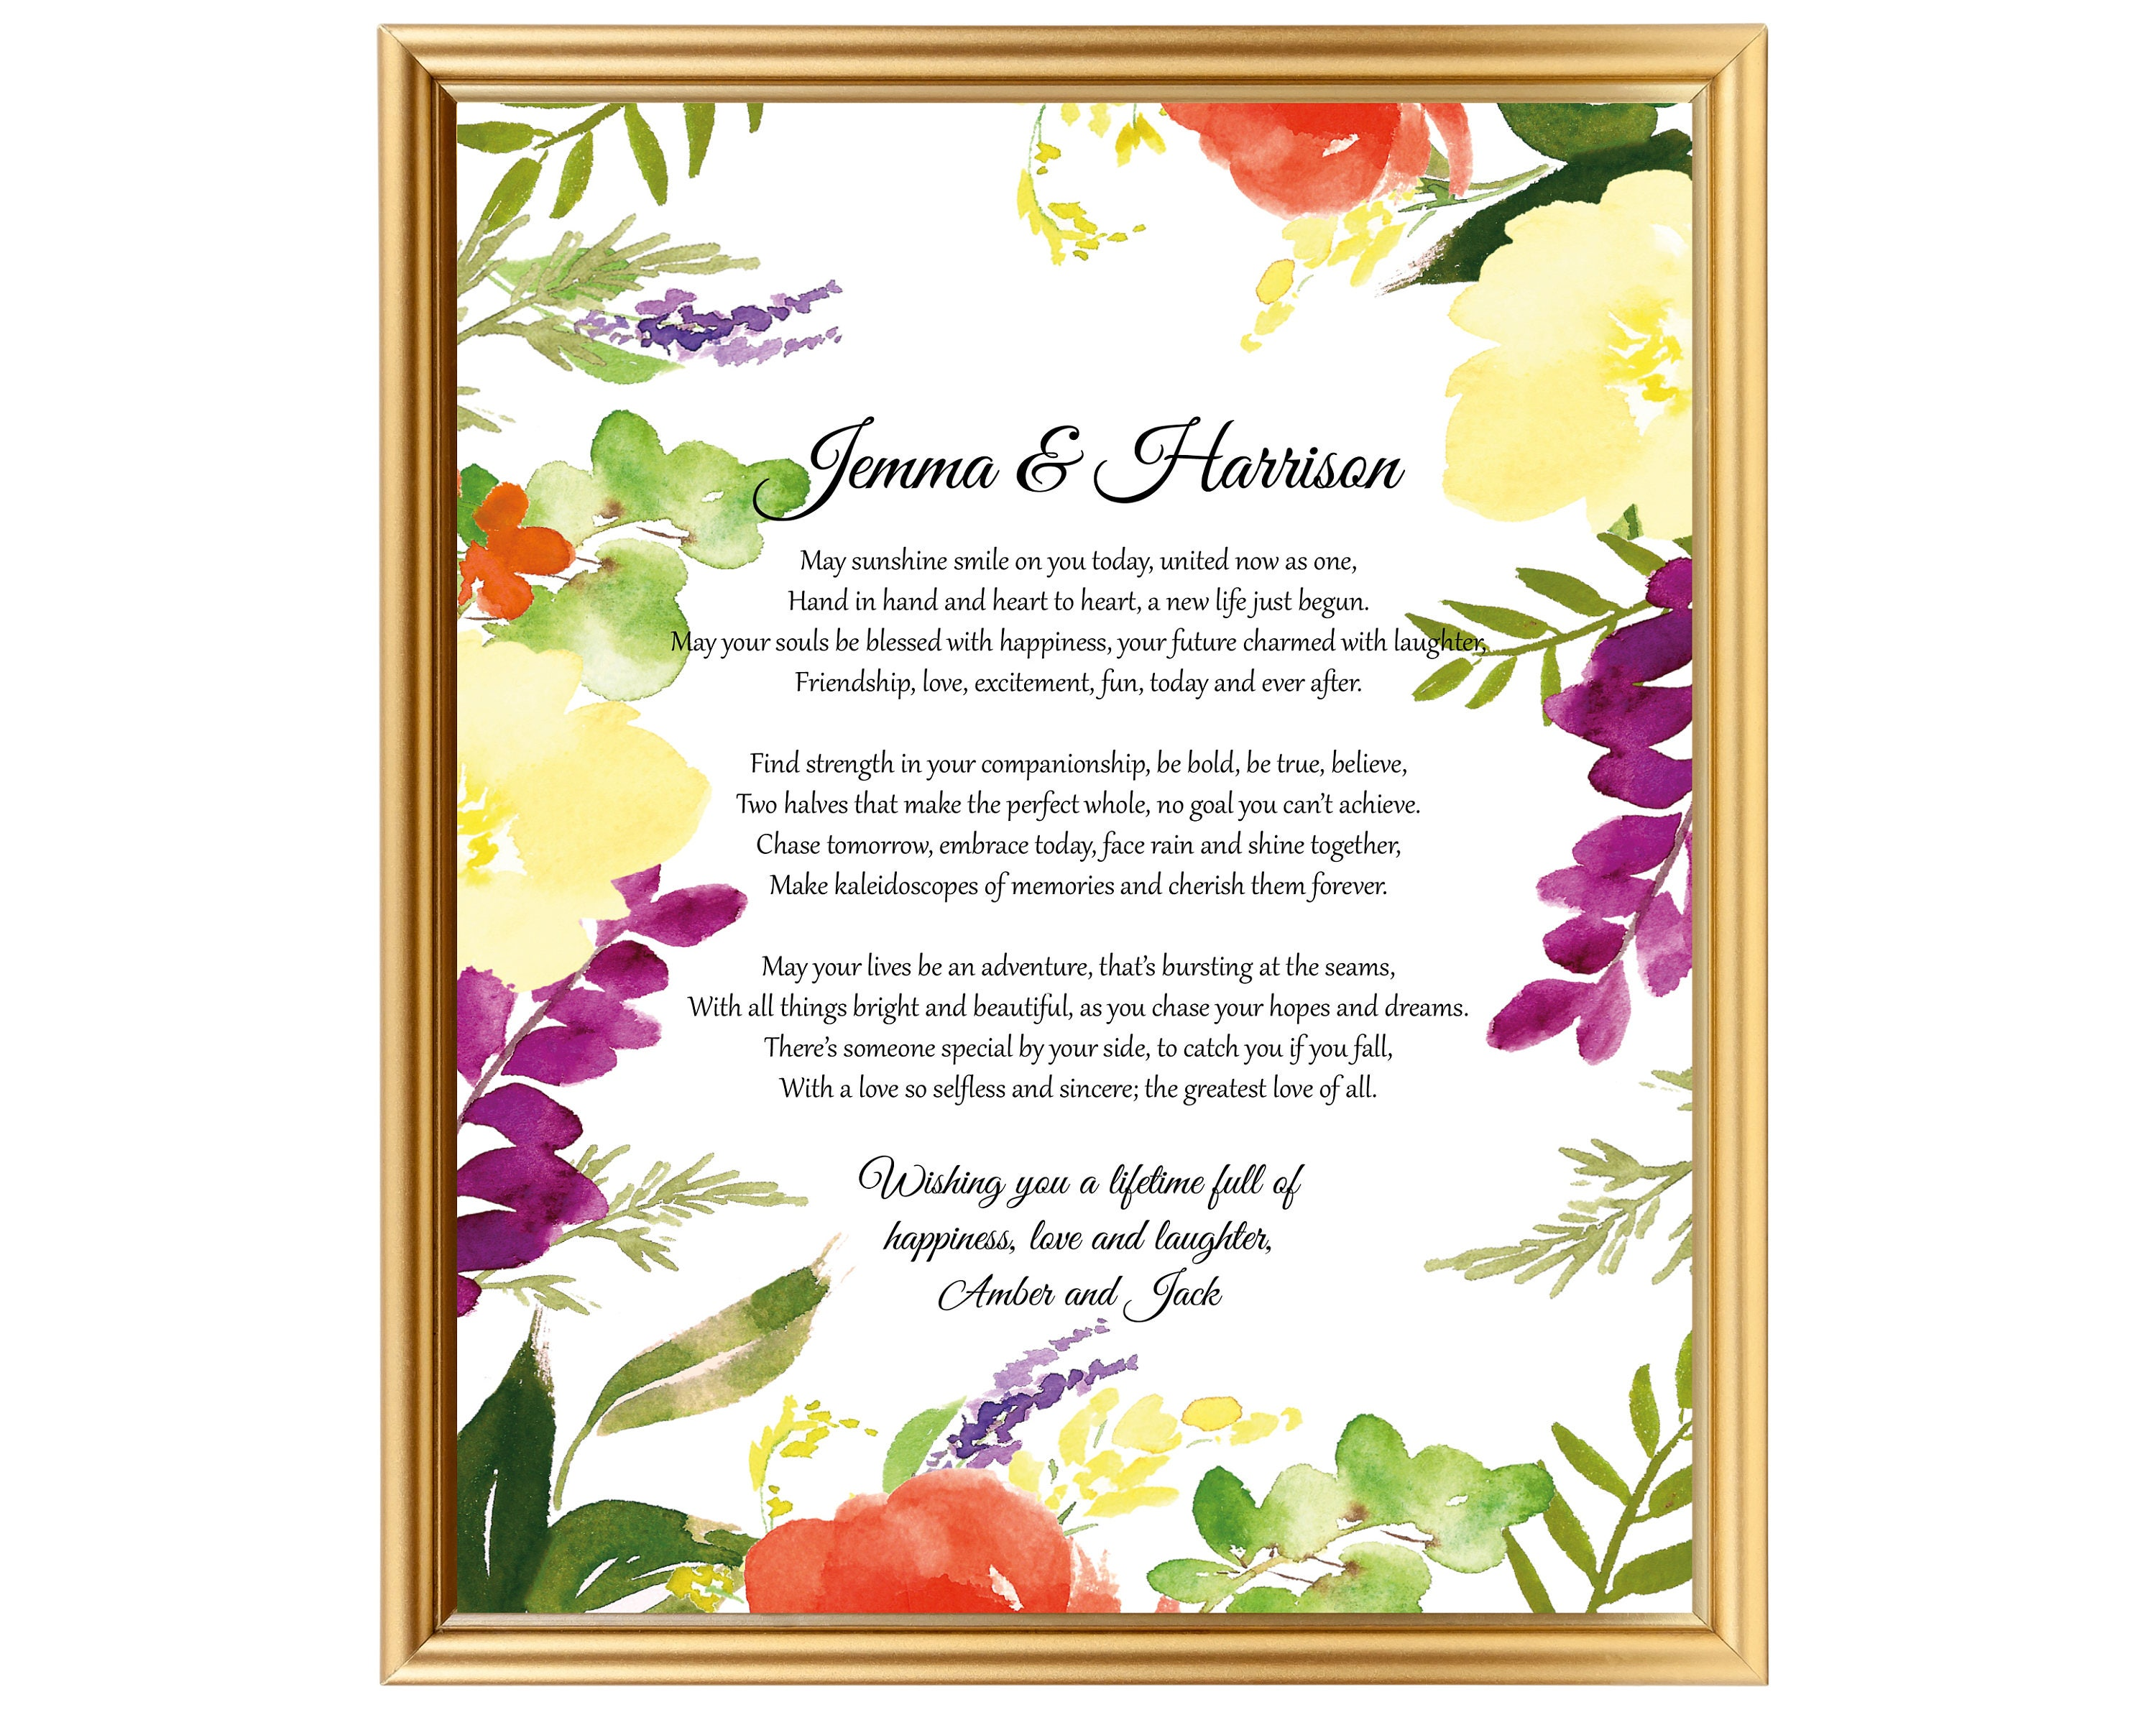 Gift For Newly Wed: Poem Gift For Married Couple Newly Wed Gifts Gift For